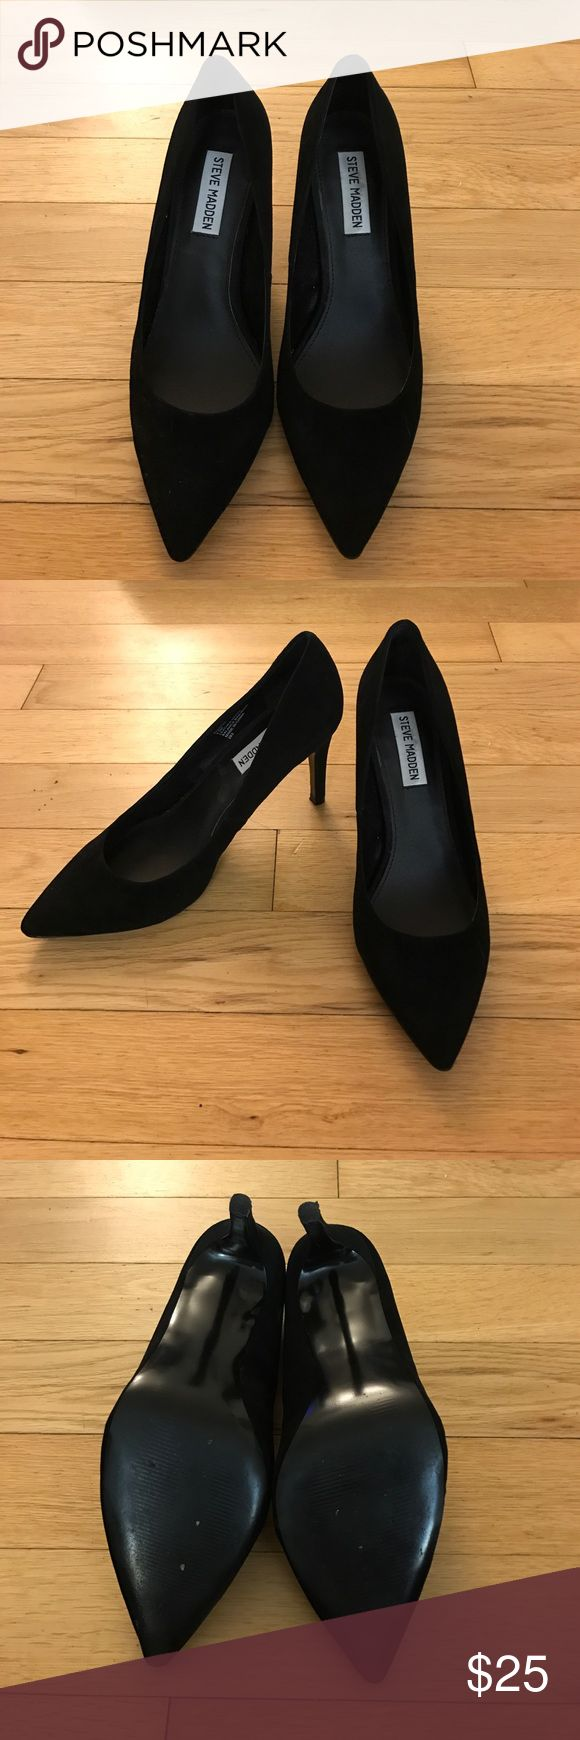 Steve Madden black heels Black leather 3.5 inch heels from Steve Madden. Leather has a smooth suede finishing. Worn once. Back of right heel has a slight scuff. Steve Madden Shoes Heels